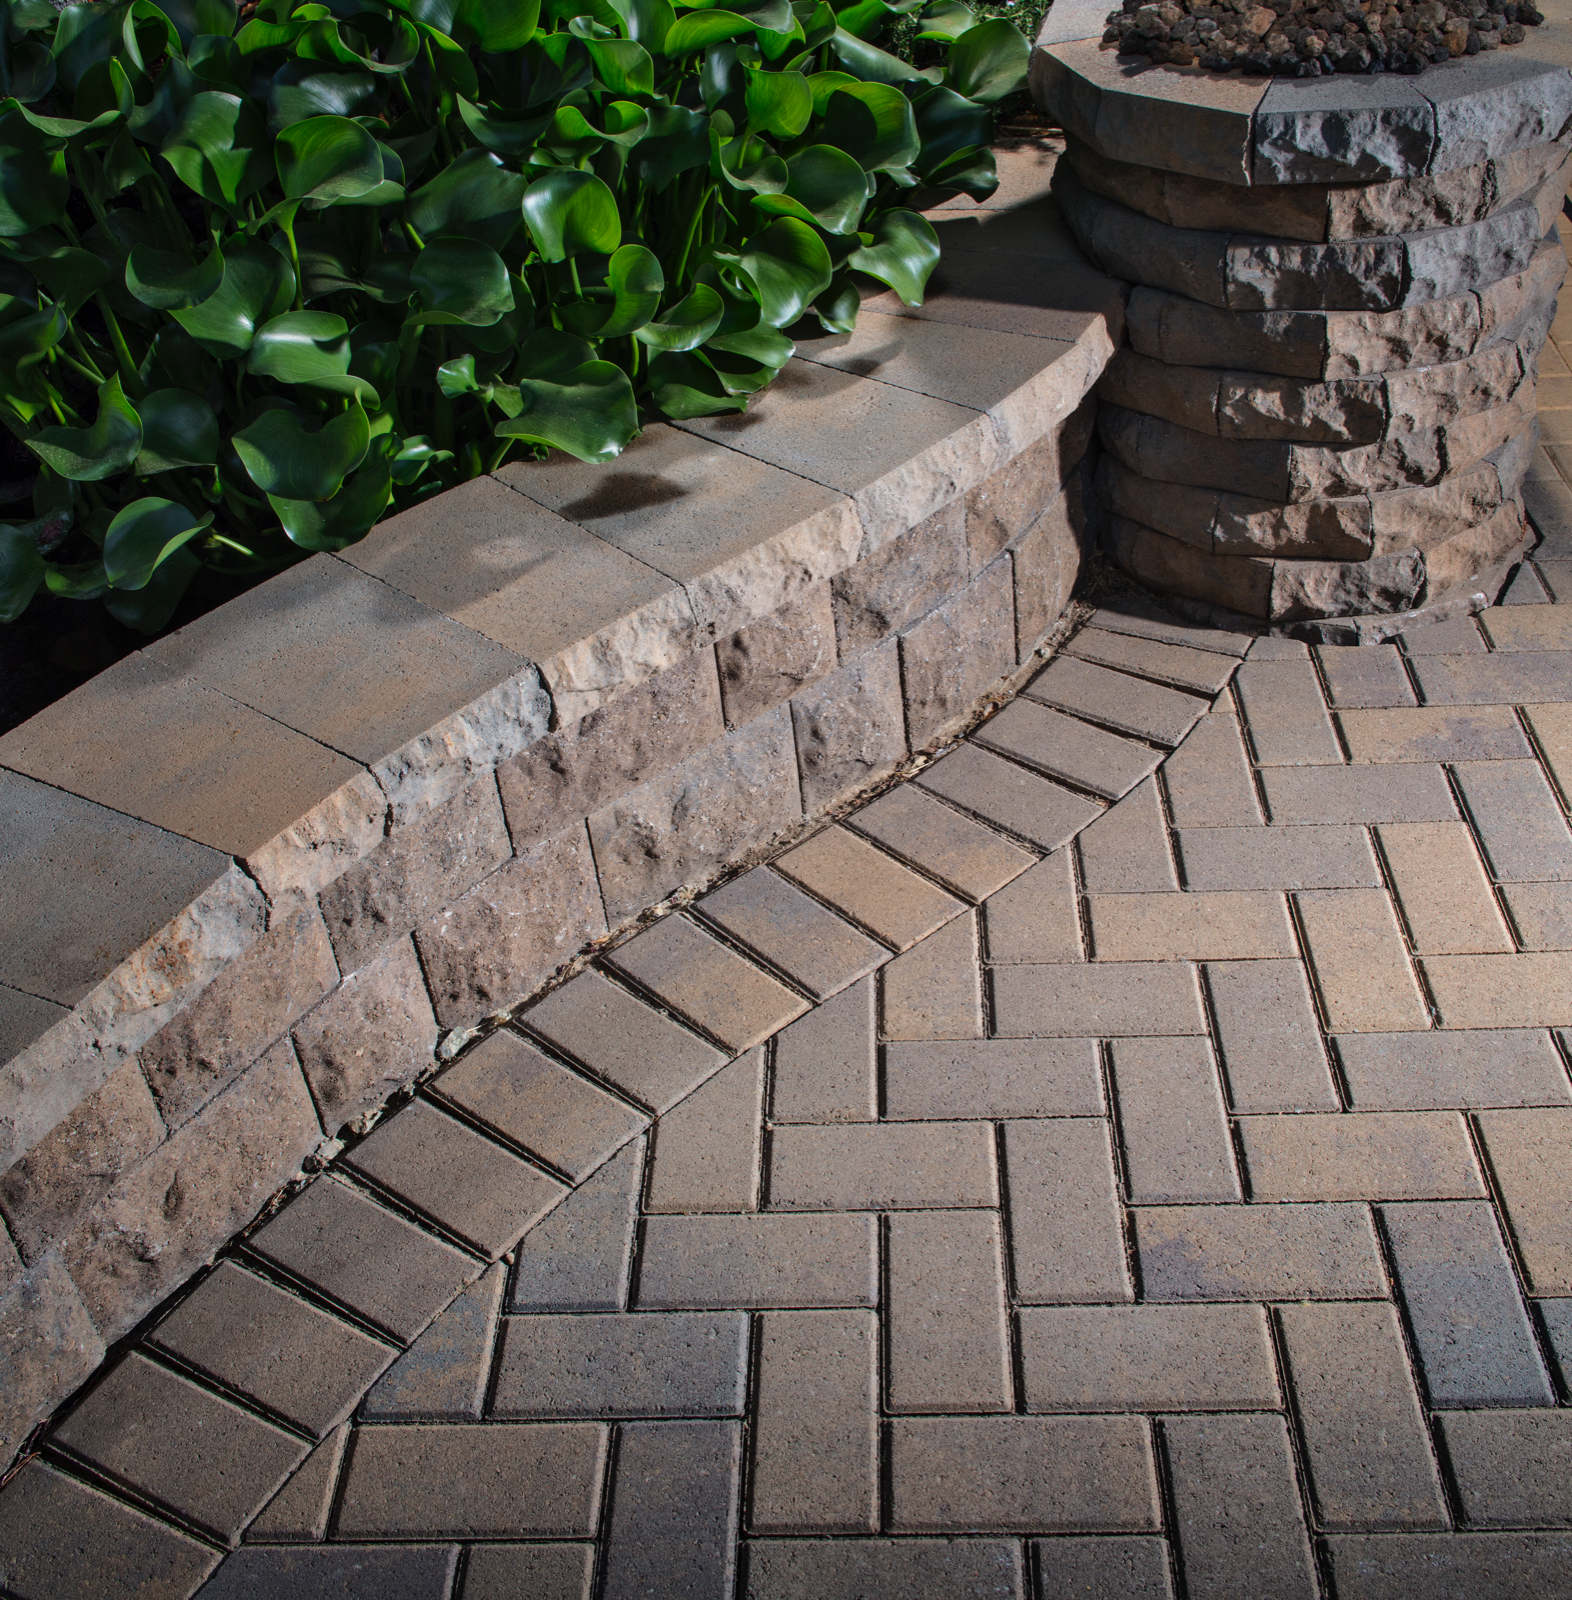 Belair wall pavers 4 less for Belgard urbana pavers